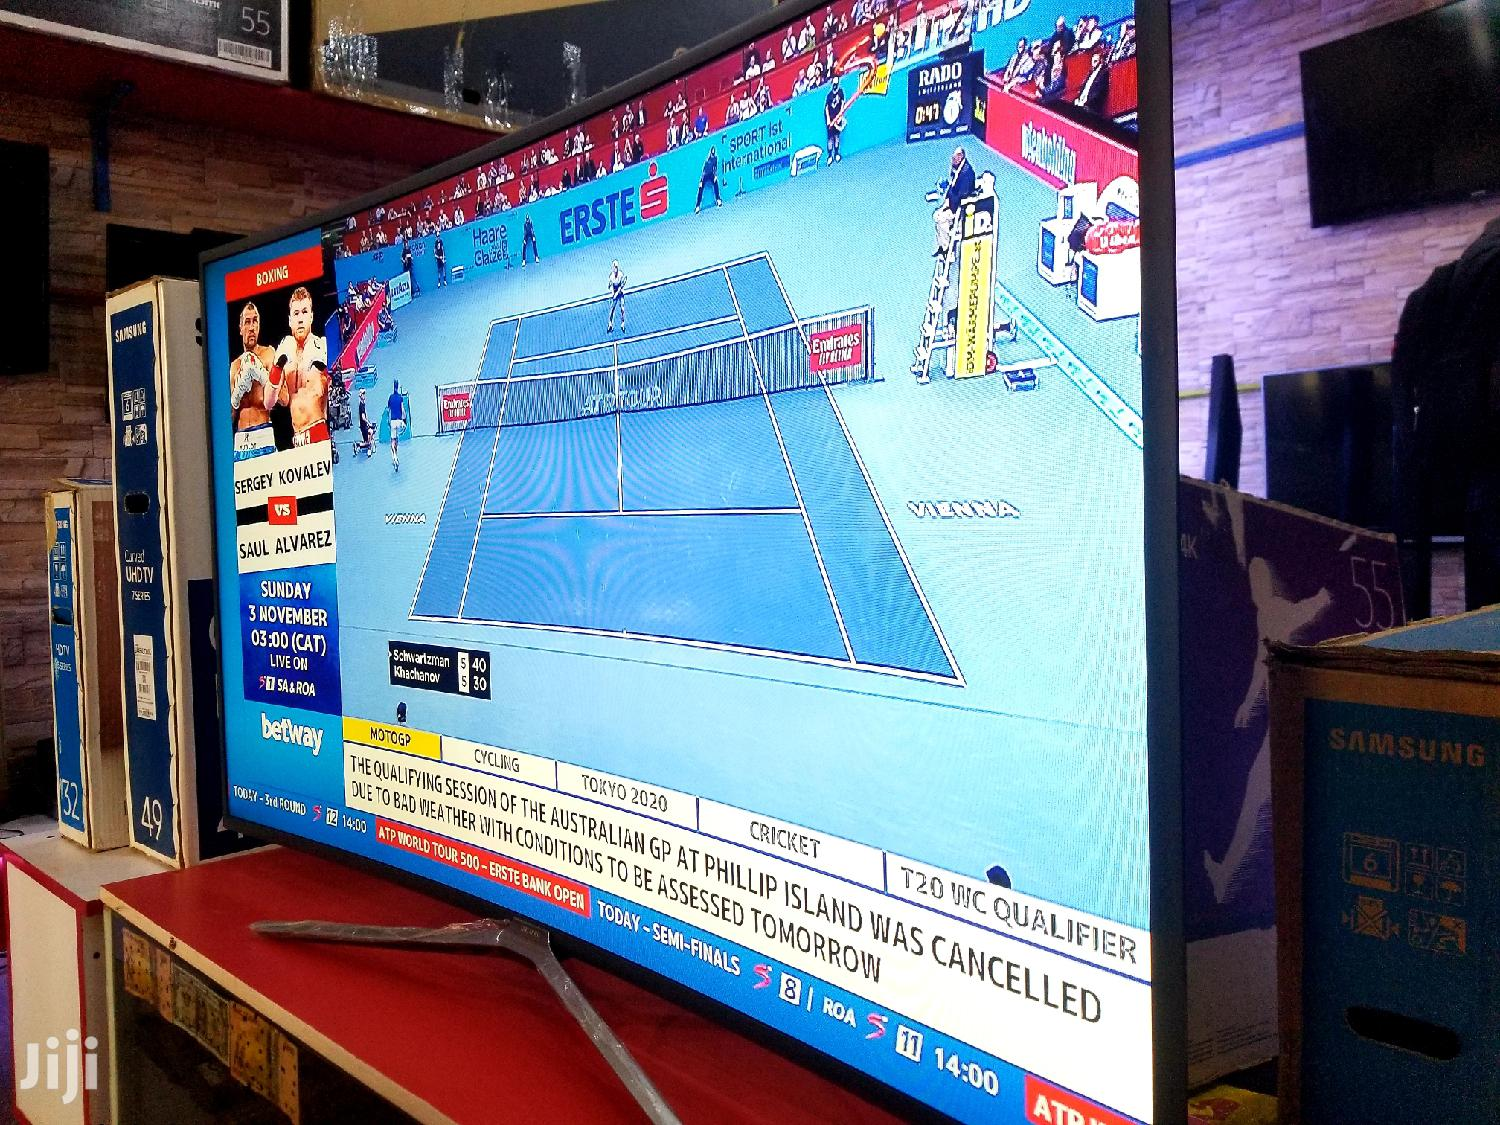 New Curved Samsung Tv 55 Inches | TV & DVD Equipment for sale in Kampala, Central Region, Uganda